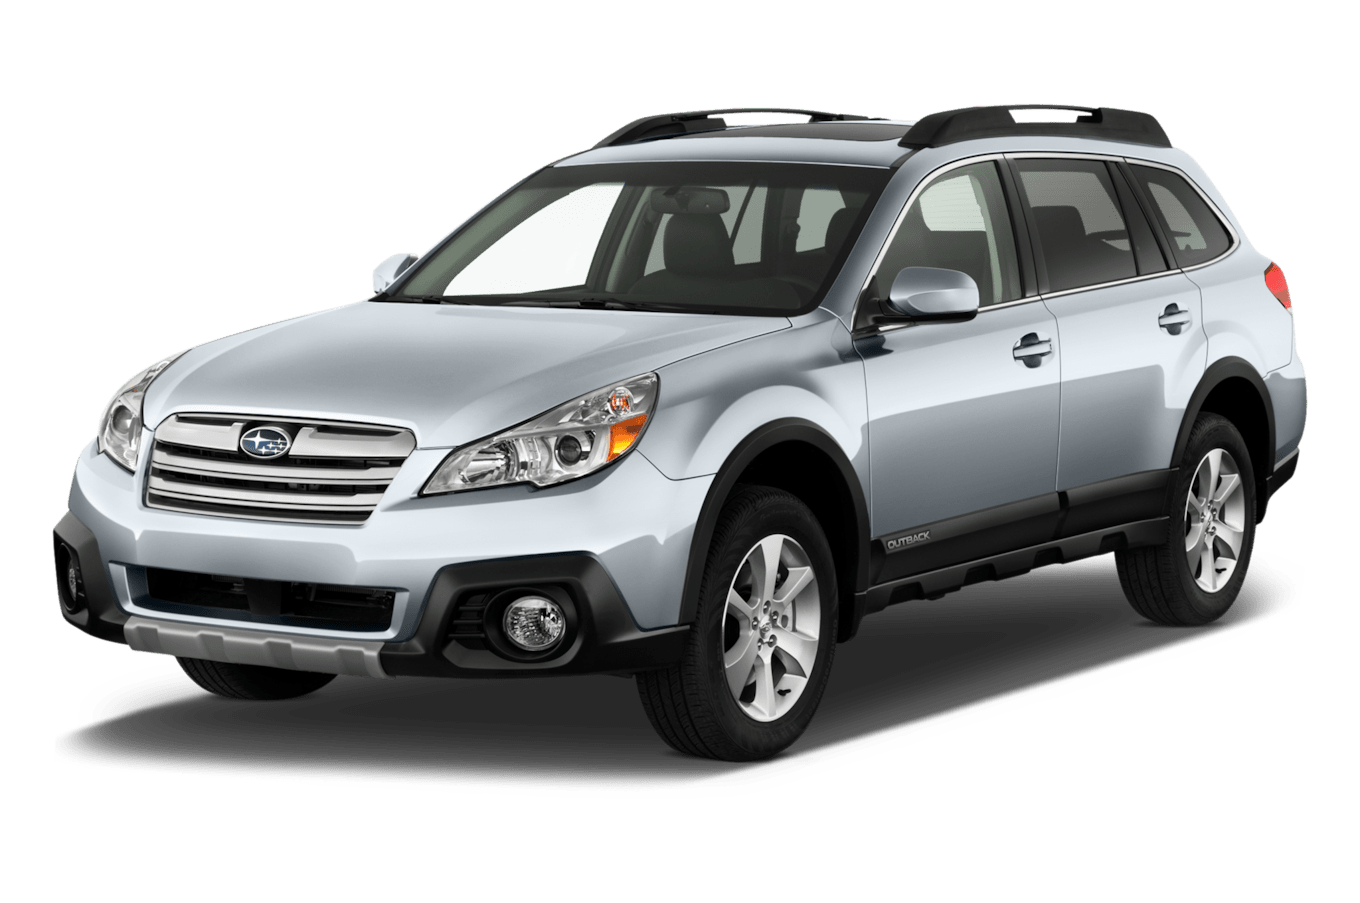 medium resolution of 2013 subaru outback reviews research outback prices specs wiring harness in addition 2016 subaru outback wagon further subaru